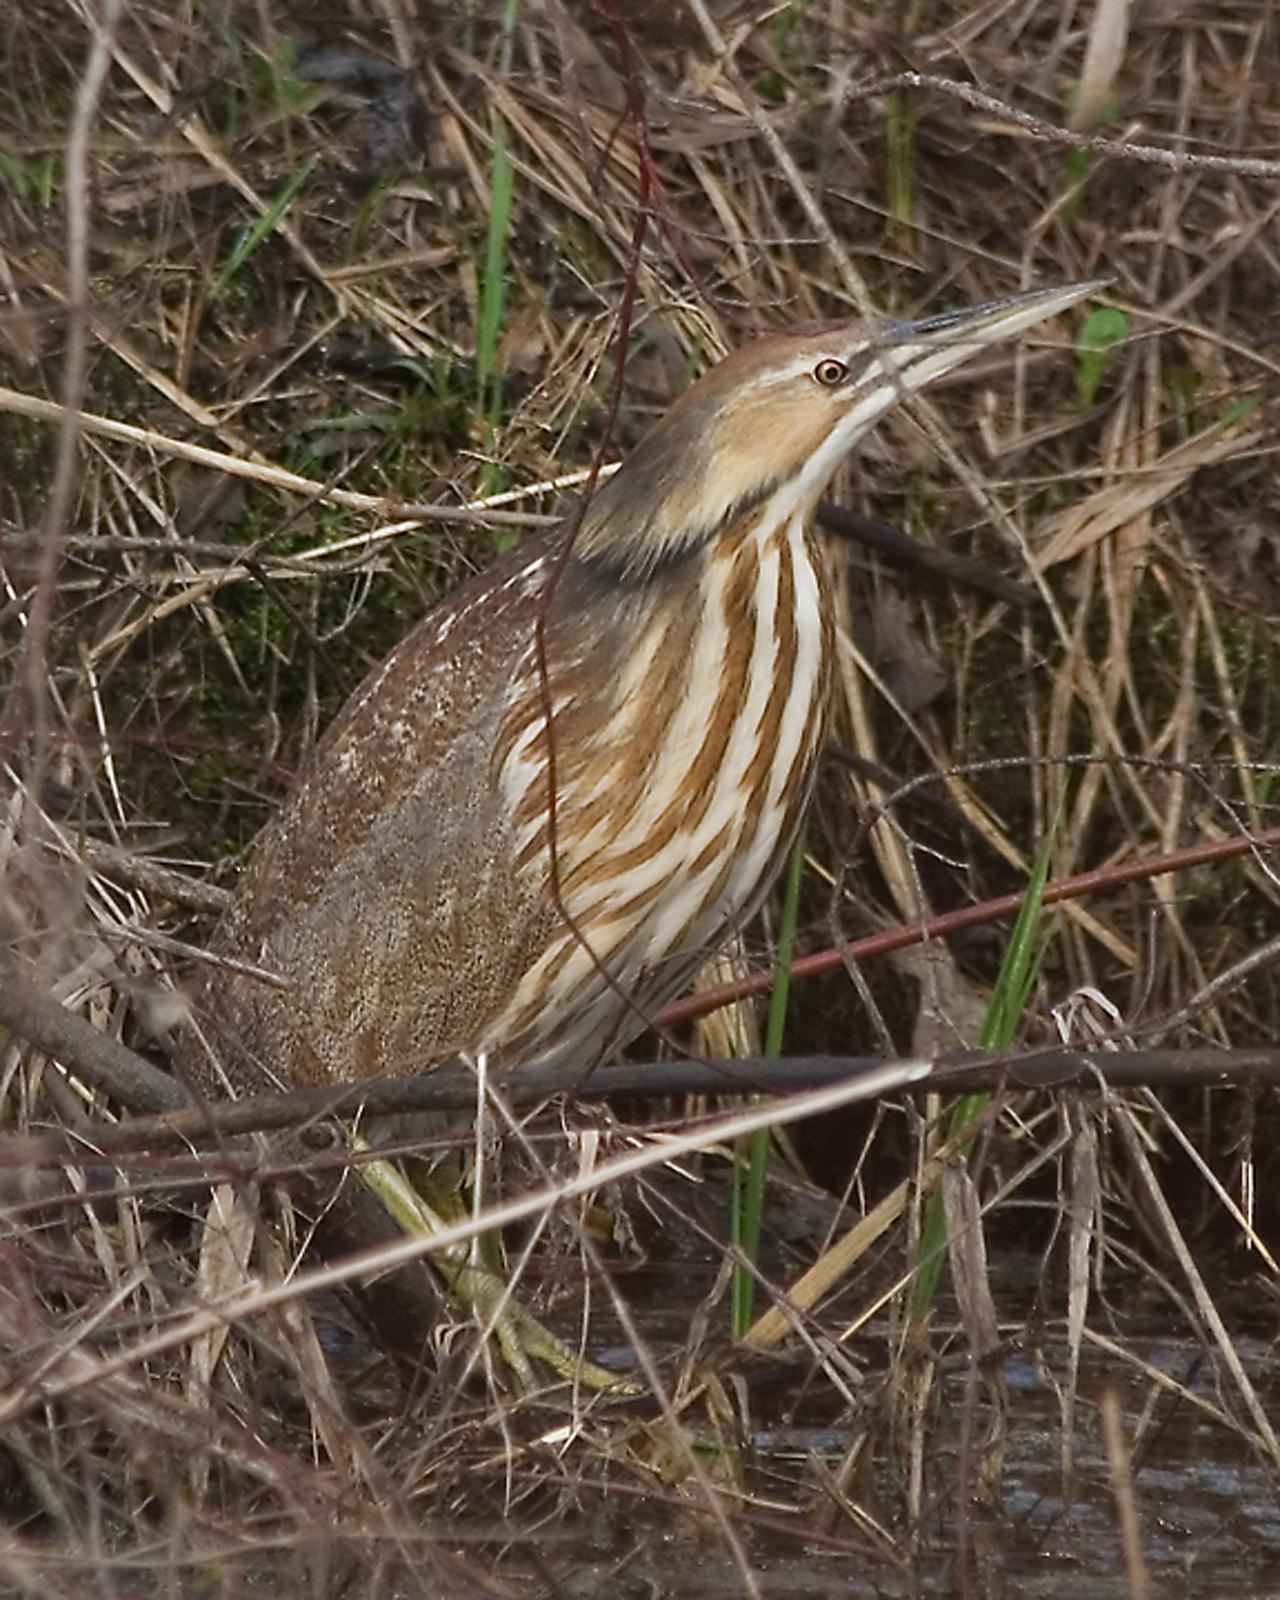 American Bittern Photo by Mark Blassage